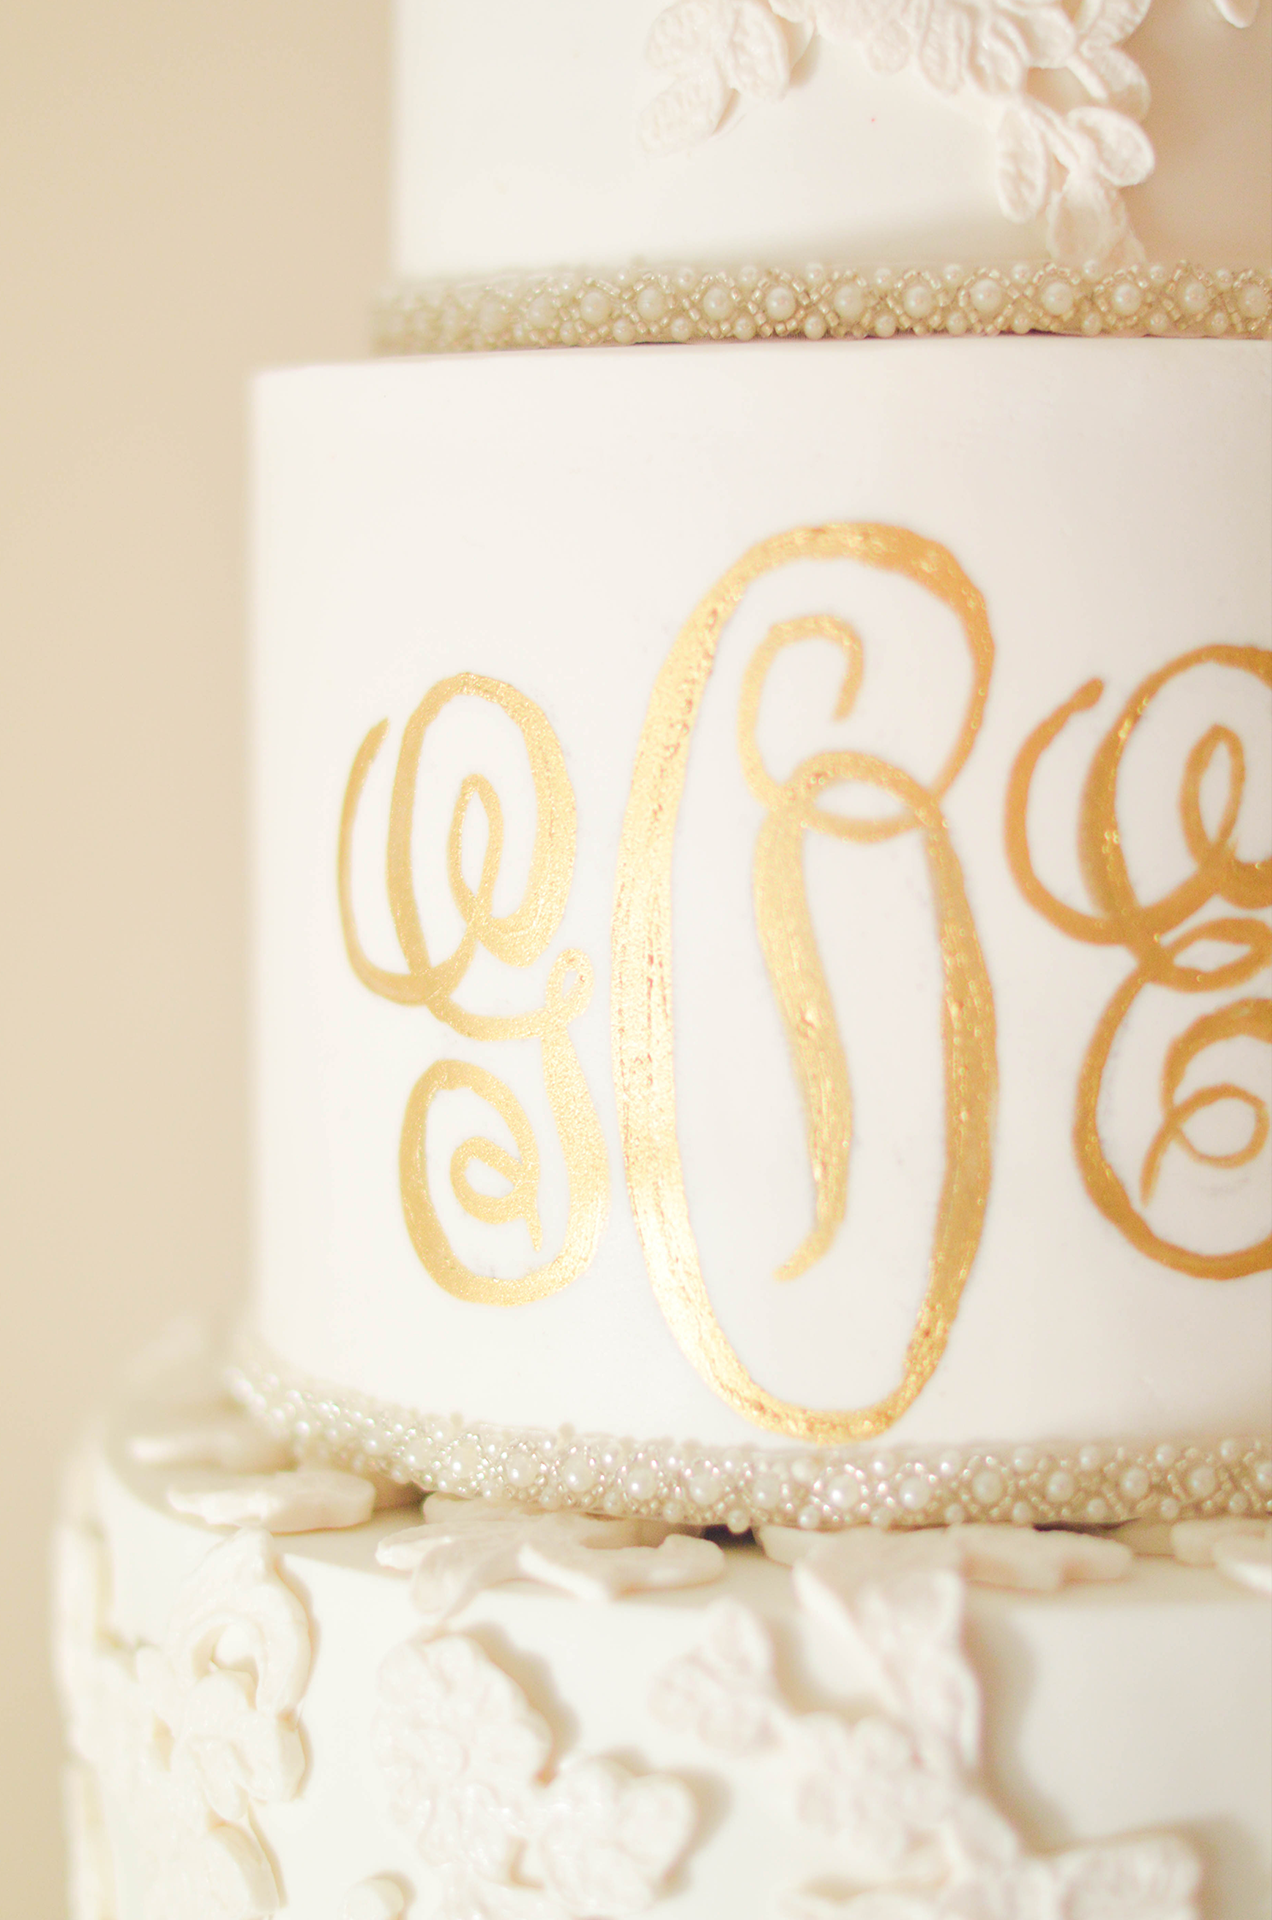 Gold Romance - The monogram was hand-painted with edible gold luster dust in a fancy antique script.